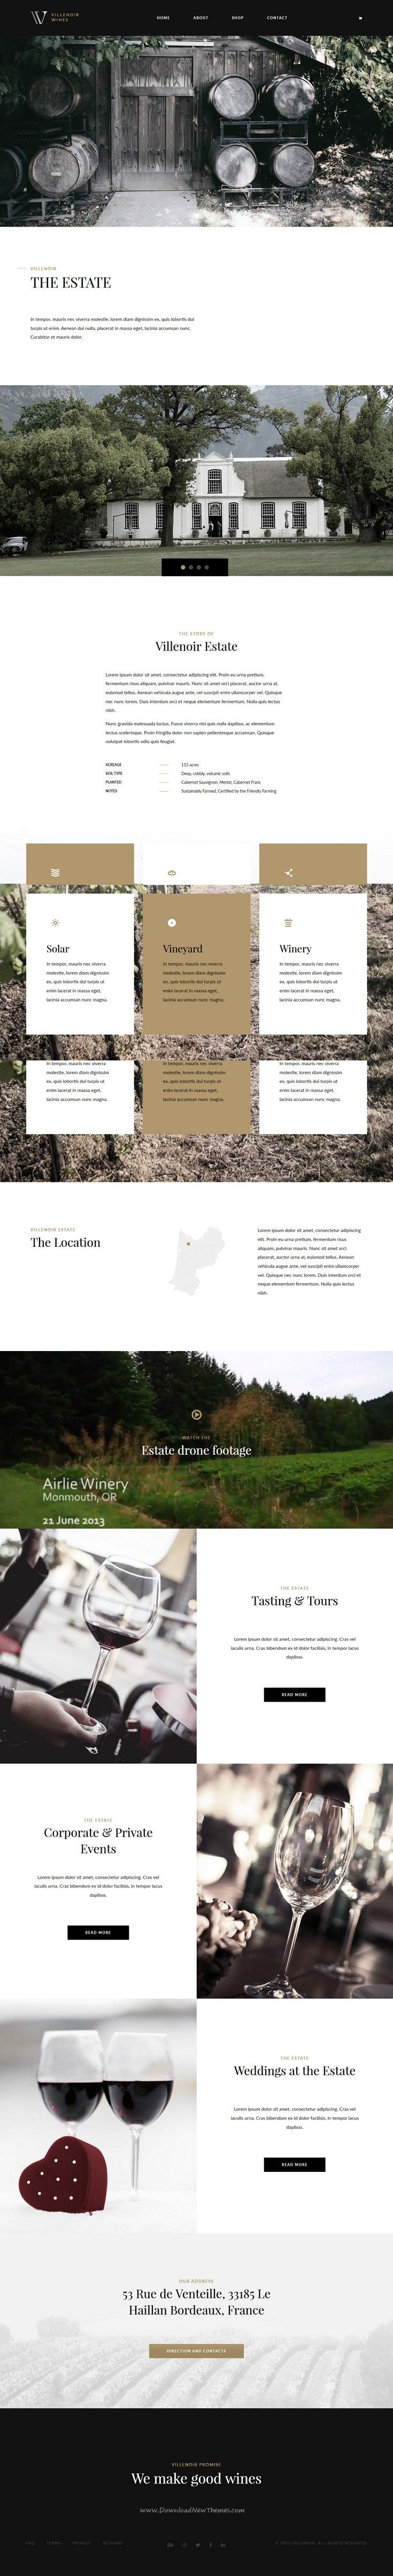 Villenoir is beautifully crafted #WordPress theme best suitable for #vineyard, winery and wine #websites.